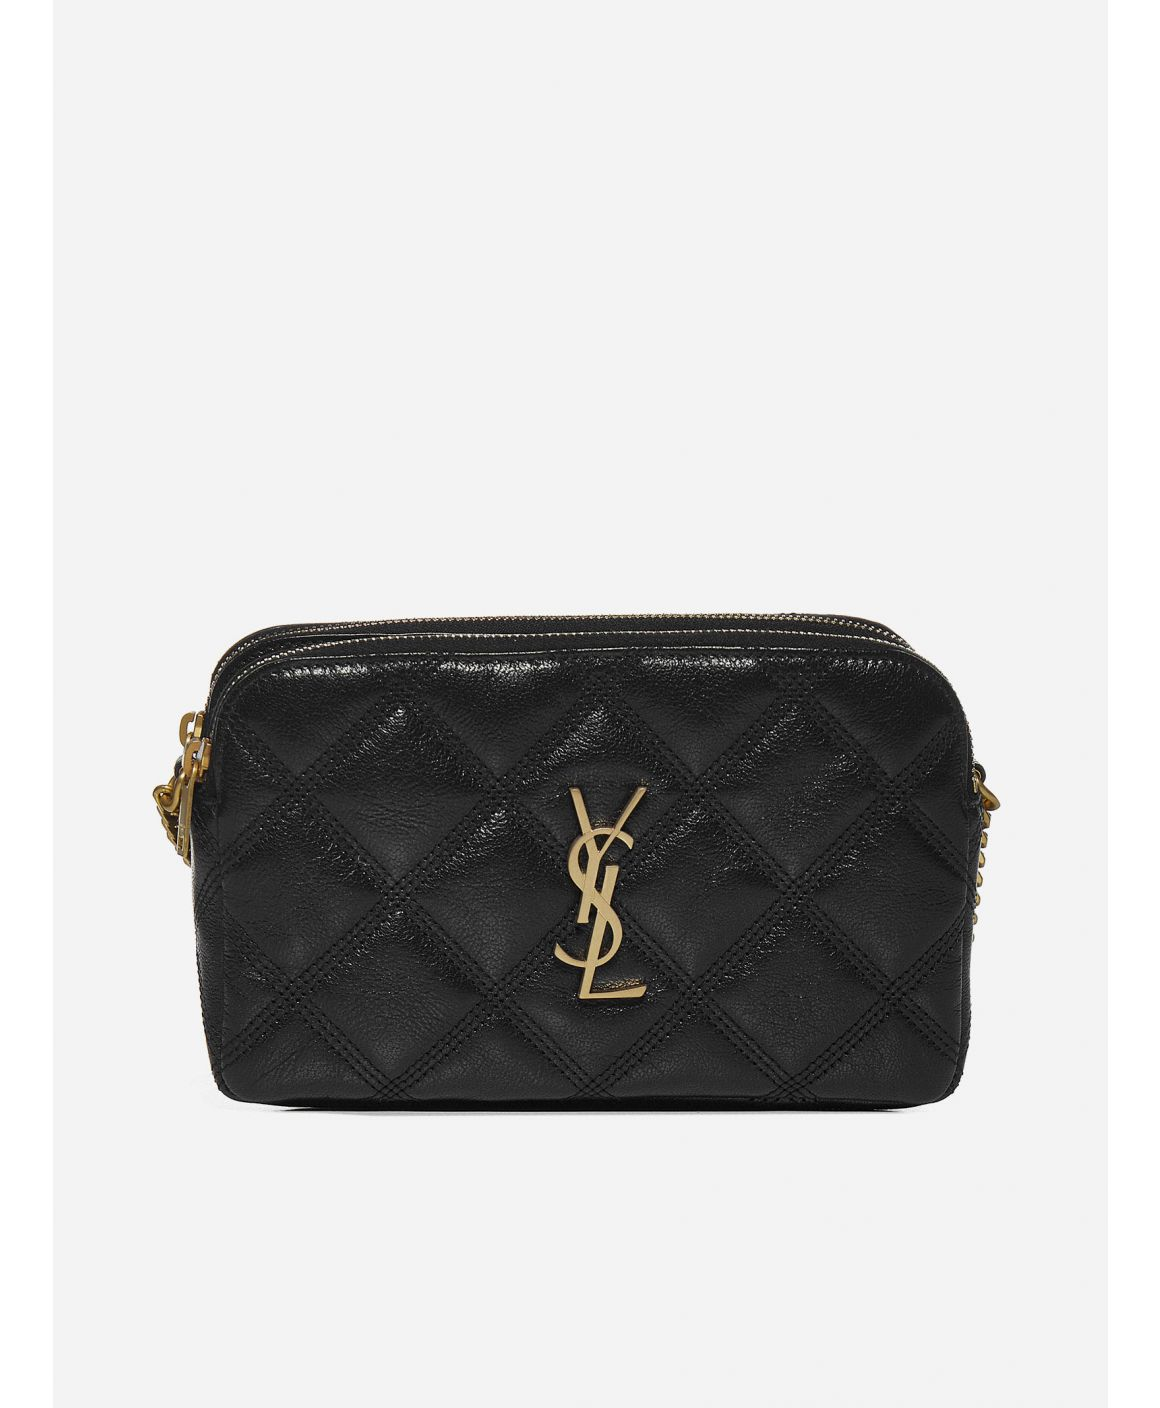 Becky YSL-logo quilted leather mini bag